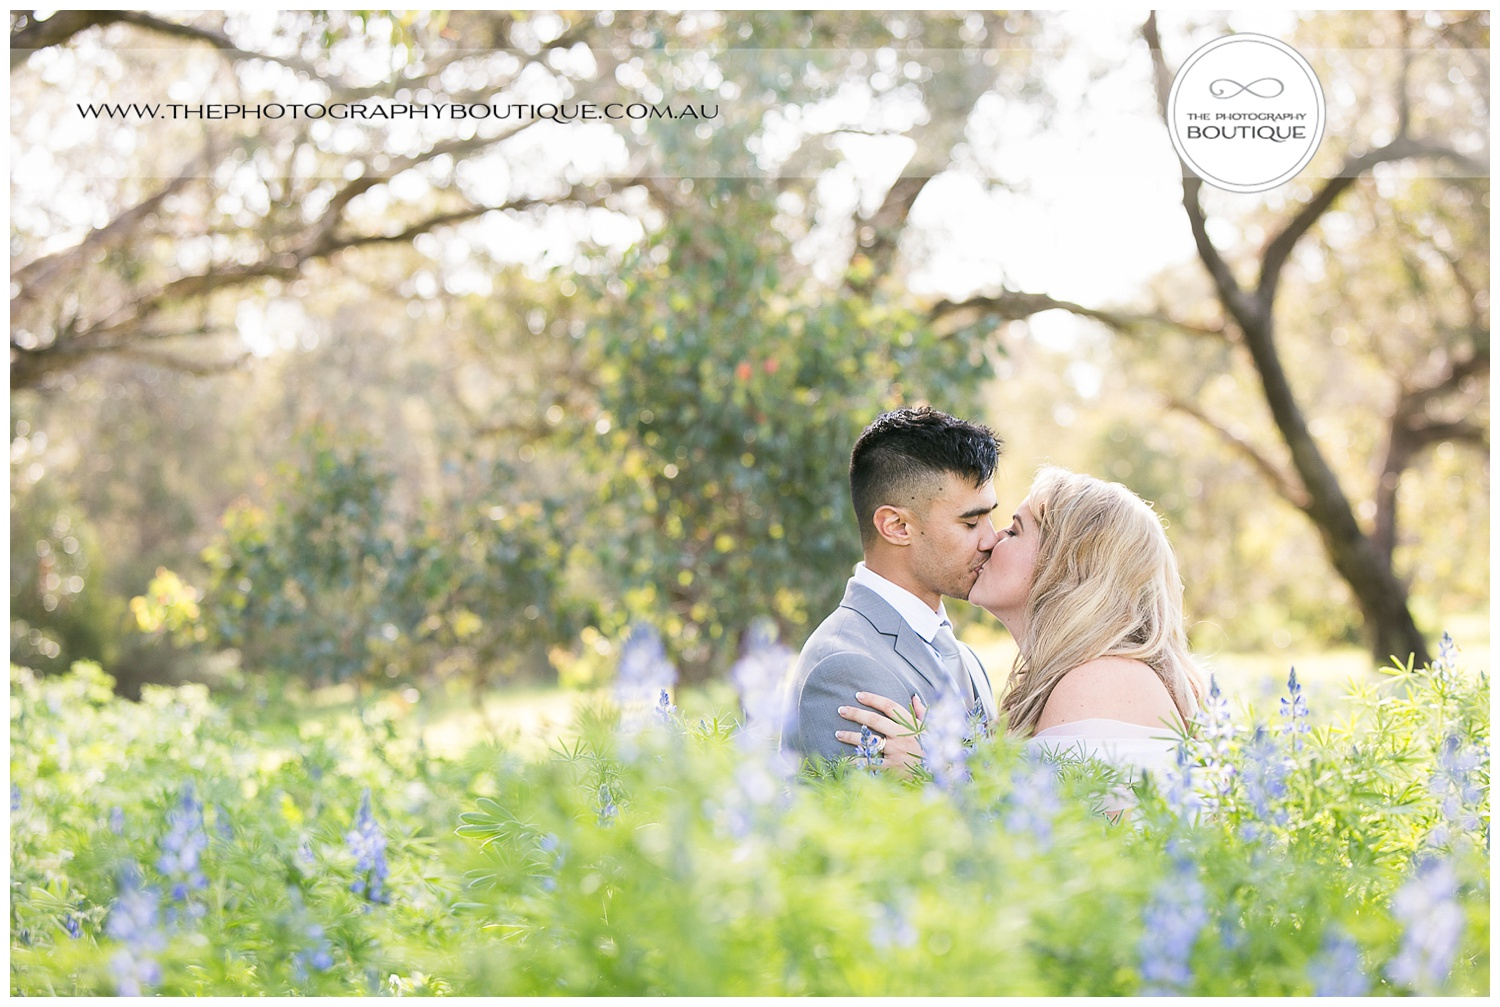 Bride and groom kissing among the flowers at Roelands Bunbury wedding